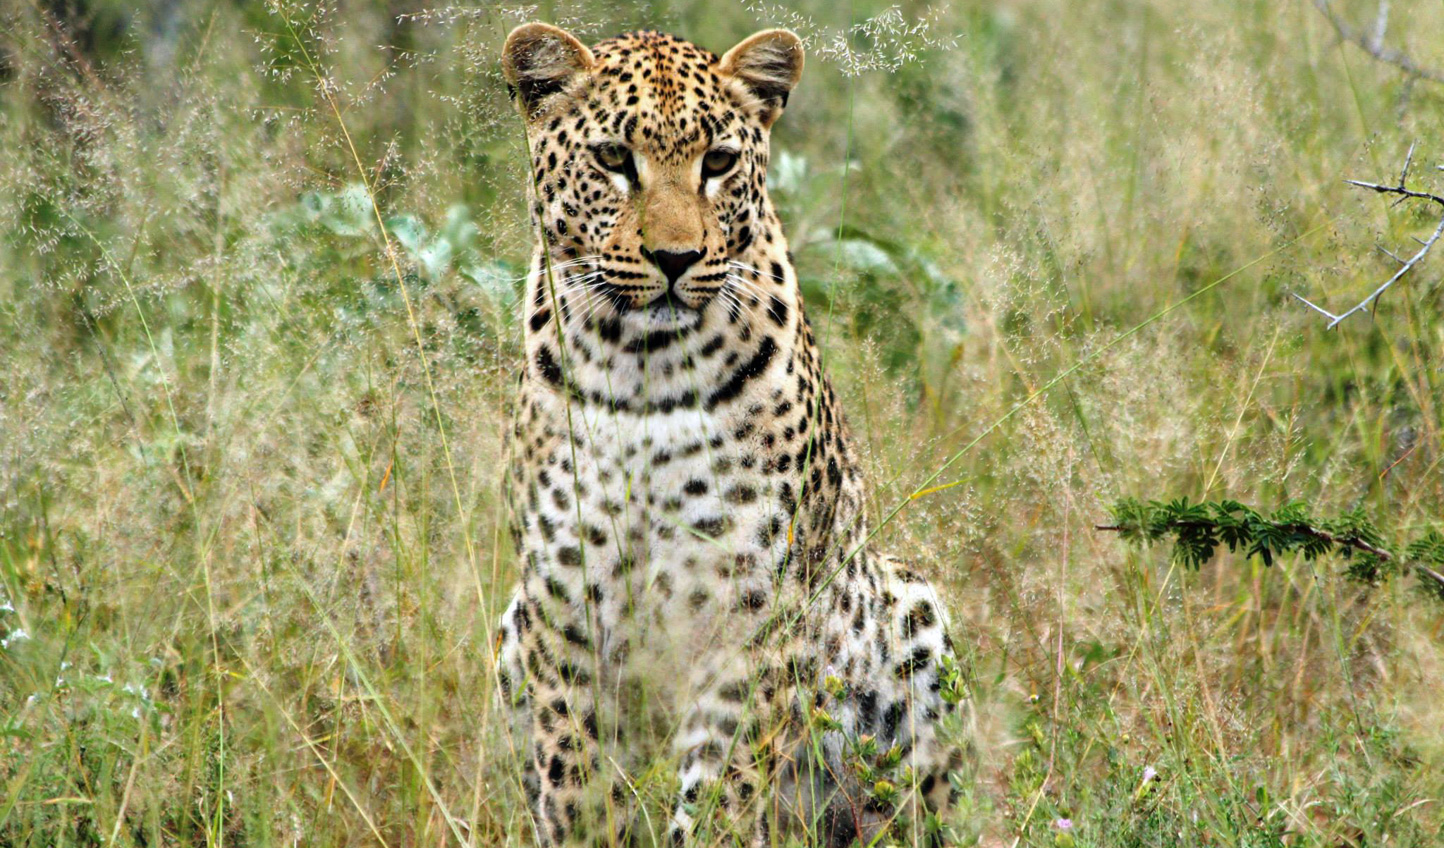 Get involved with the AfriCat Foundation